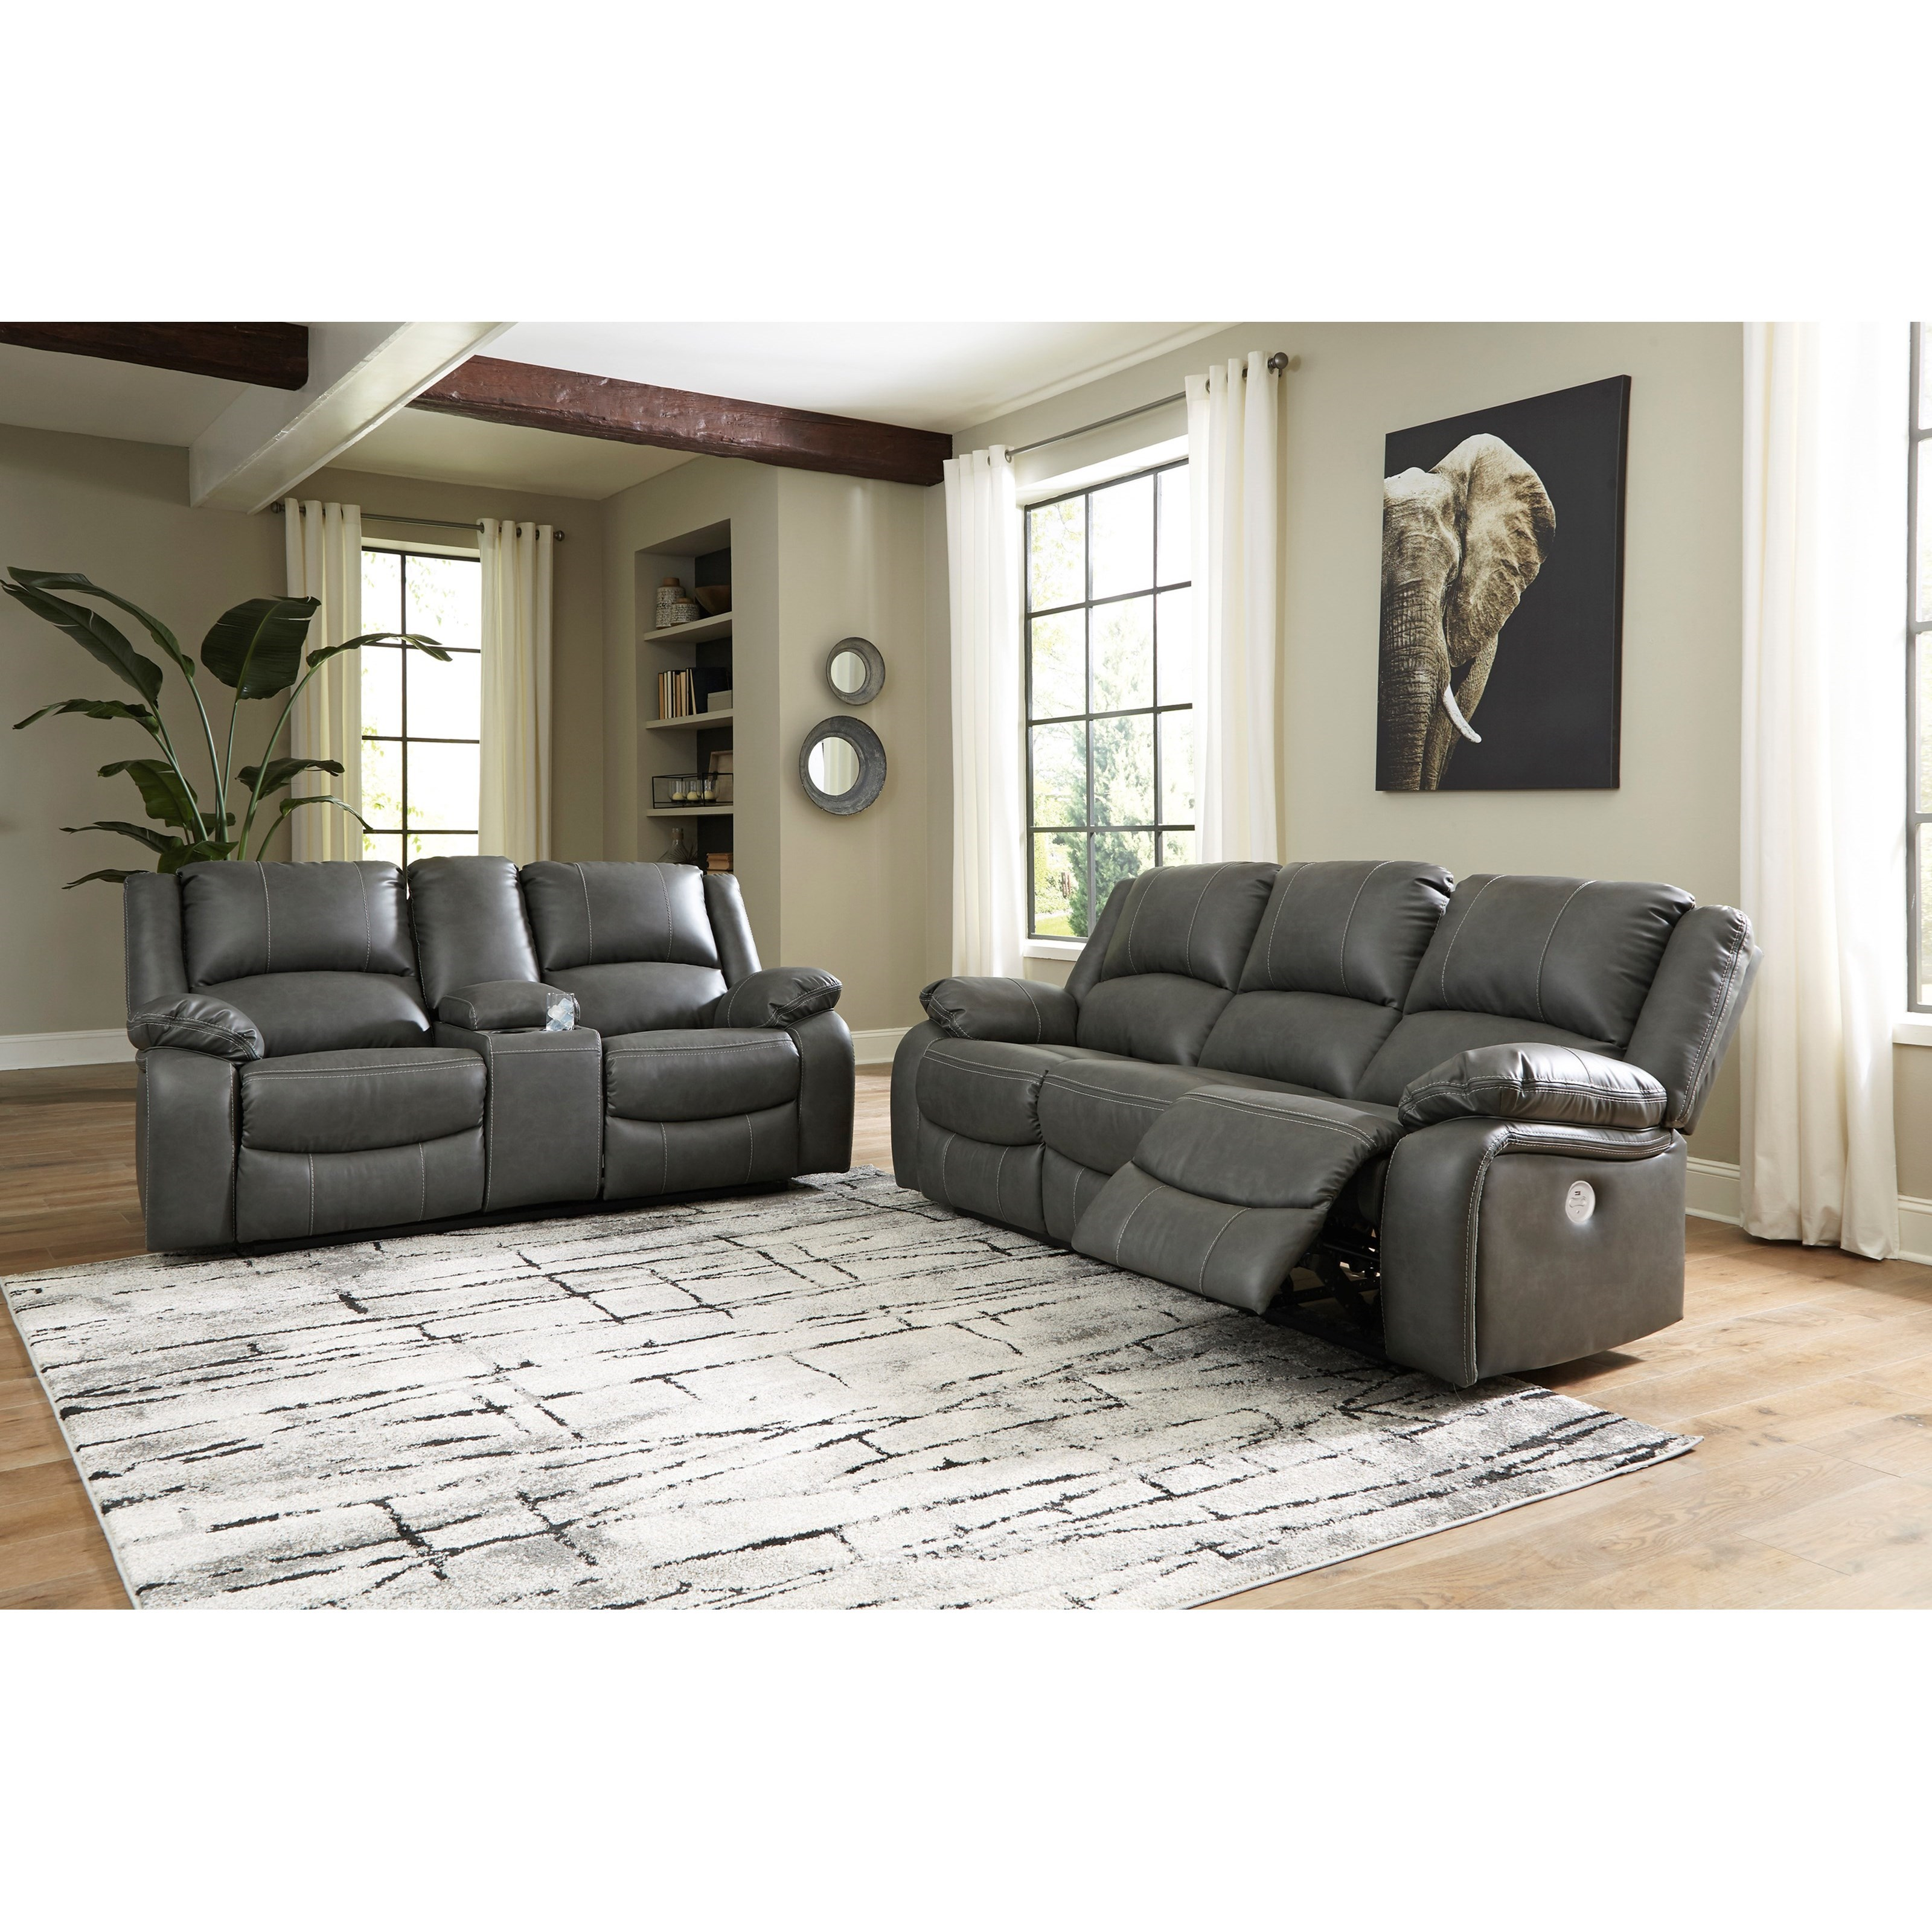 Calderwell Power Reclining Living Room Group at Van Hill Furniture